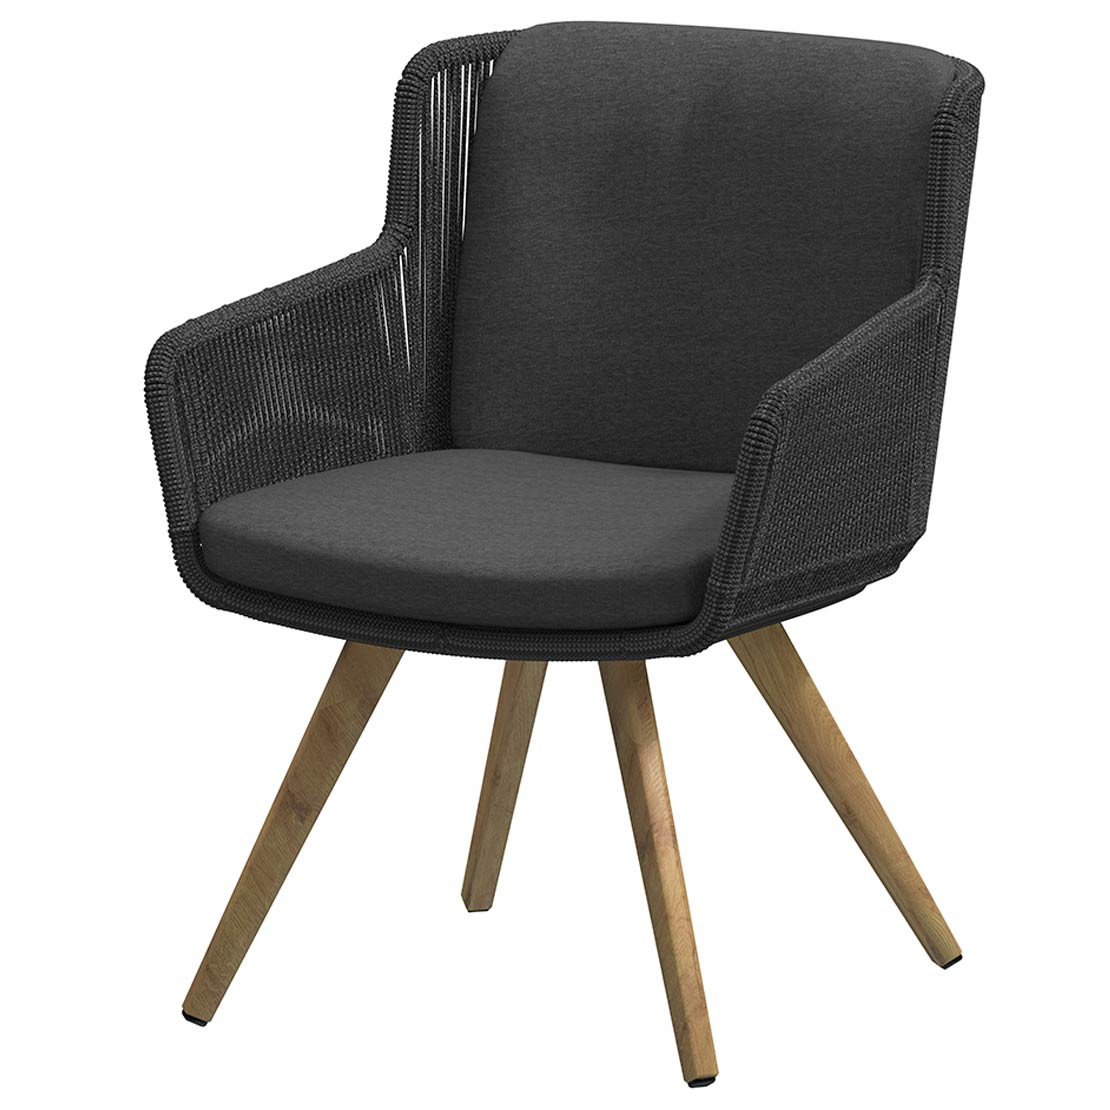 Flores dining chair Teak legs Anthracite with 2 cushions